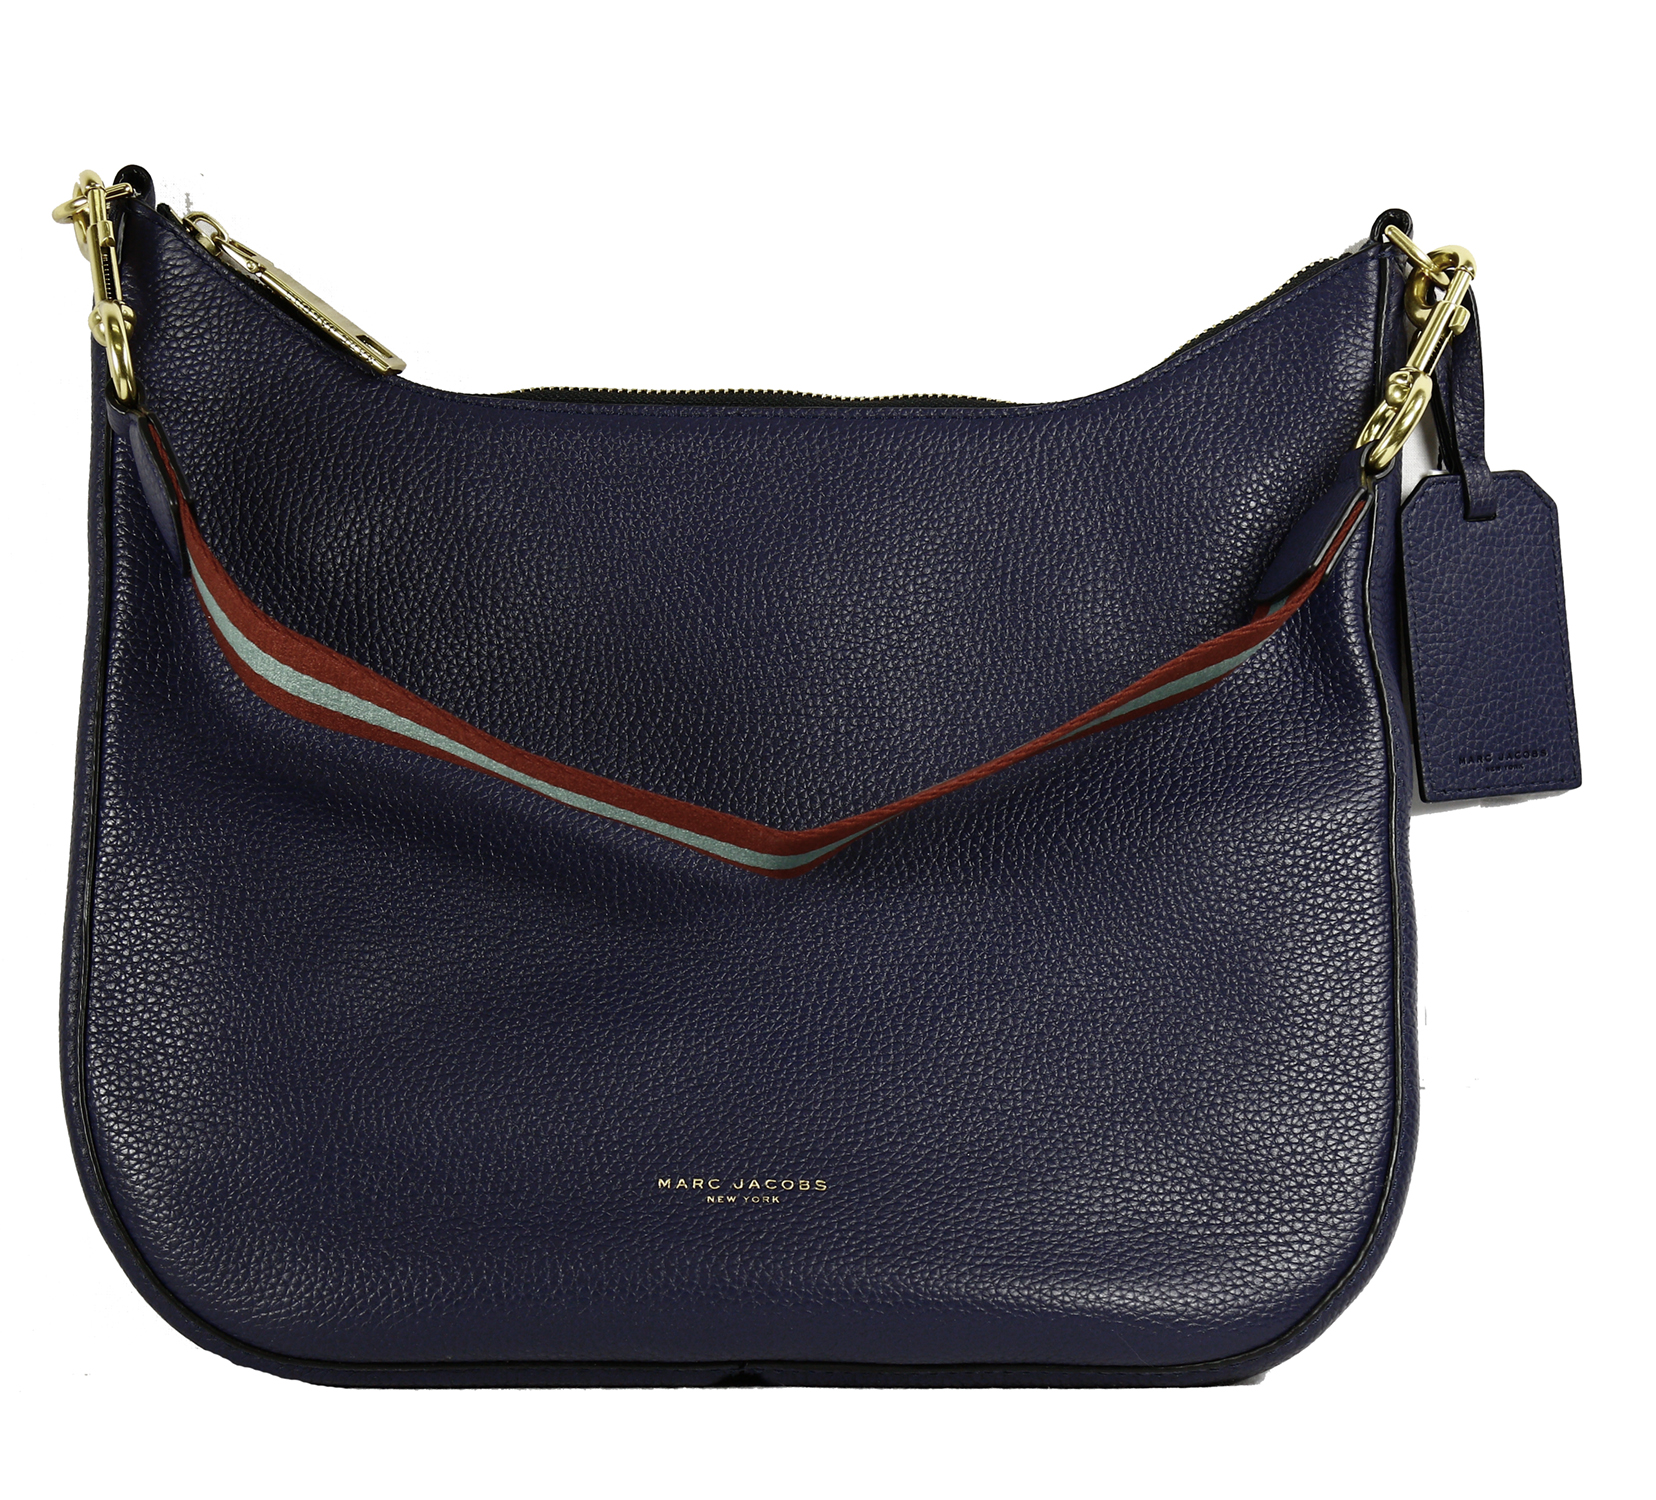 8b84f54d3868 Marc Jacobs Leather Gotham Hobo Bag in Midnight Blue 889732548260